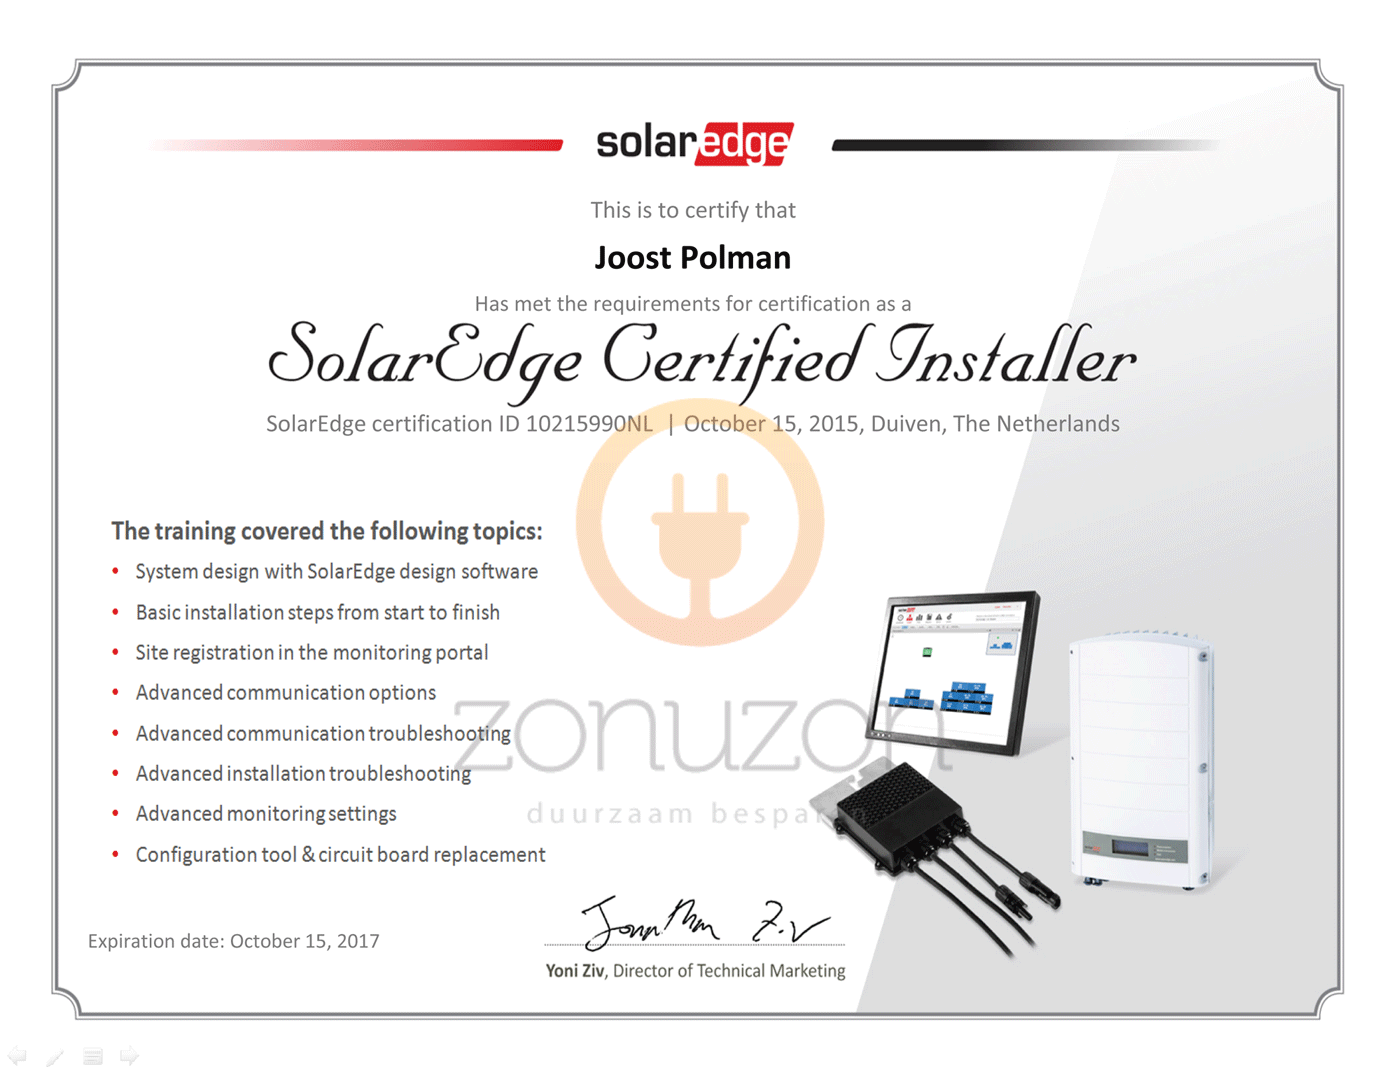 gecertificeerd solaredge installateur